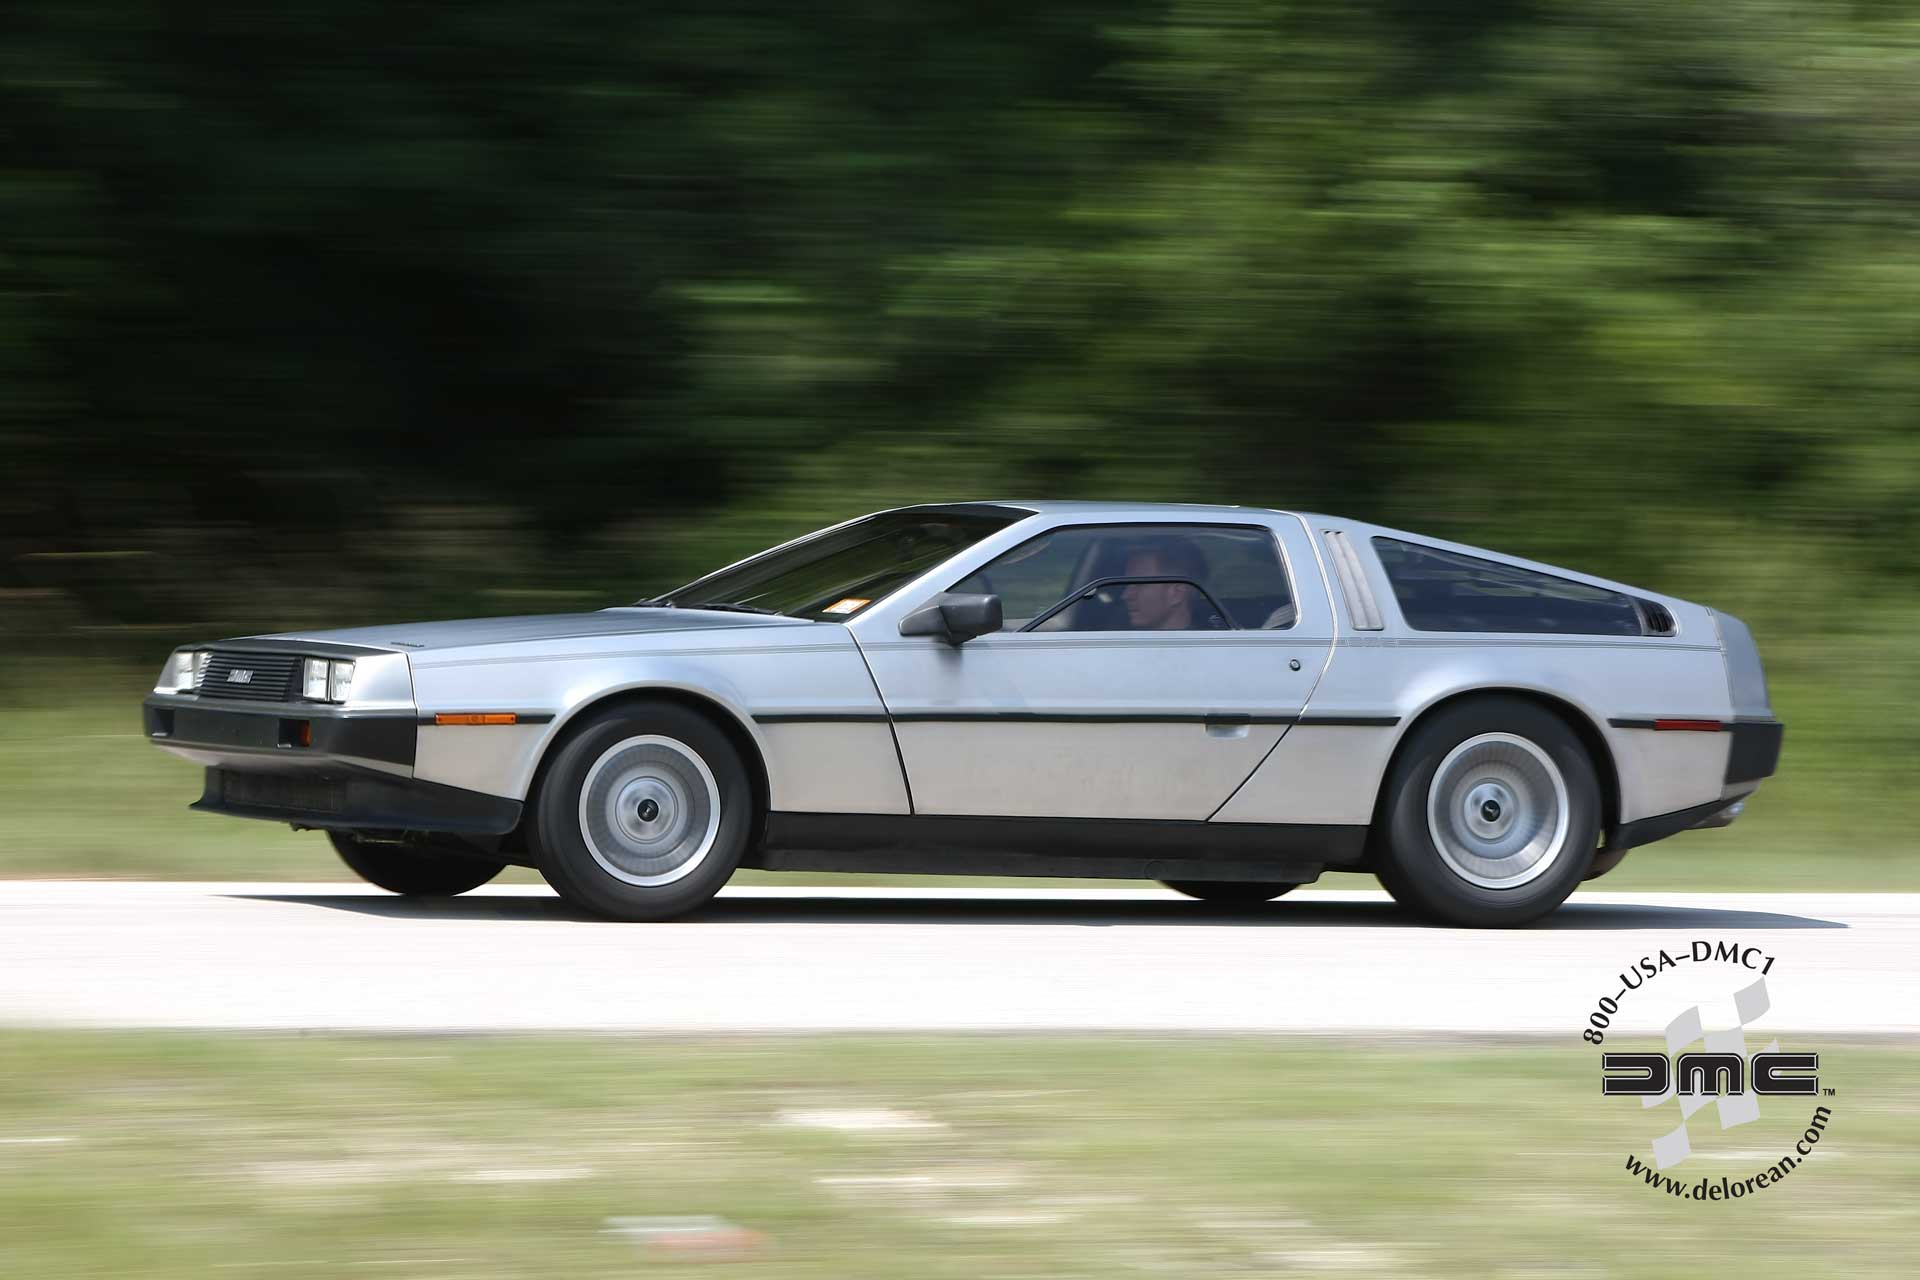 The new DeLorean Mot